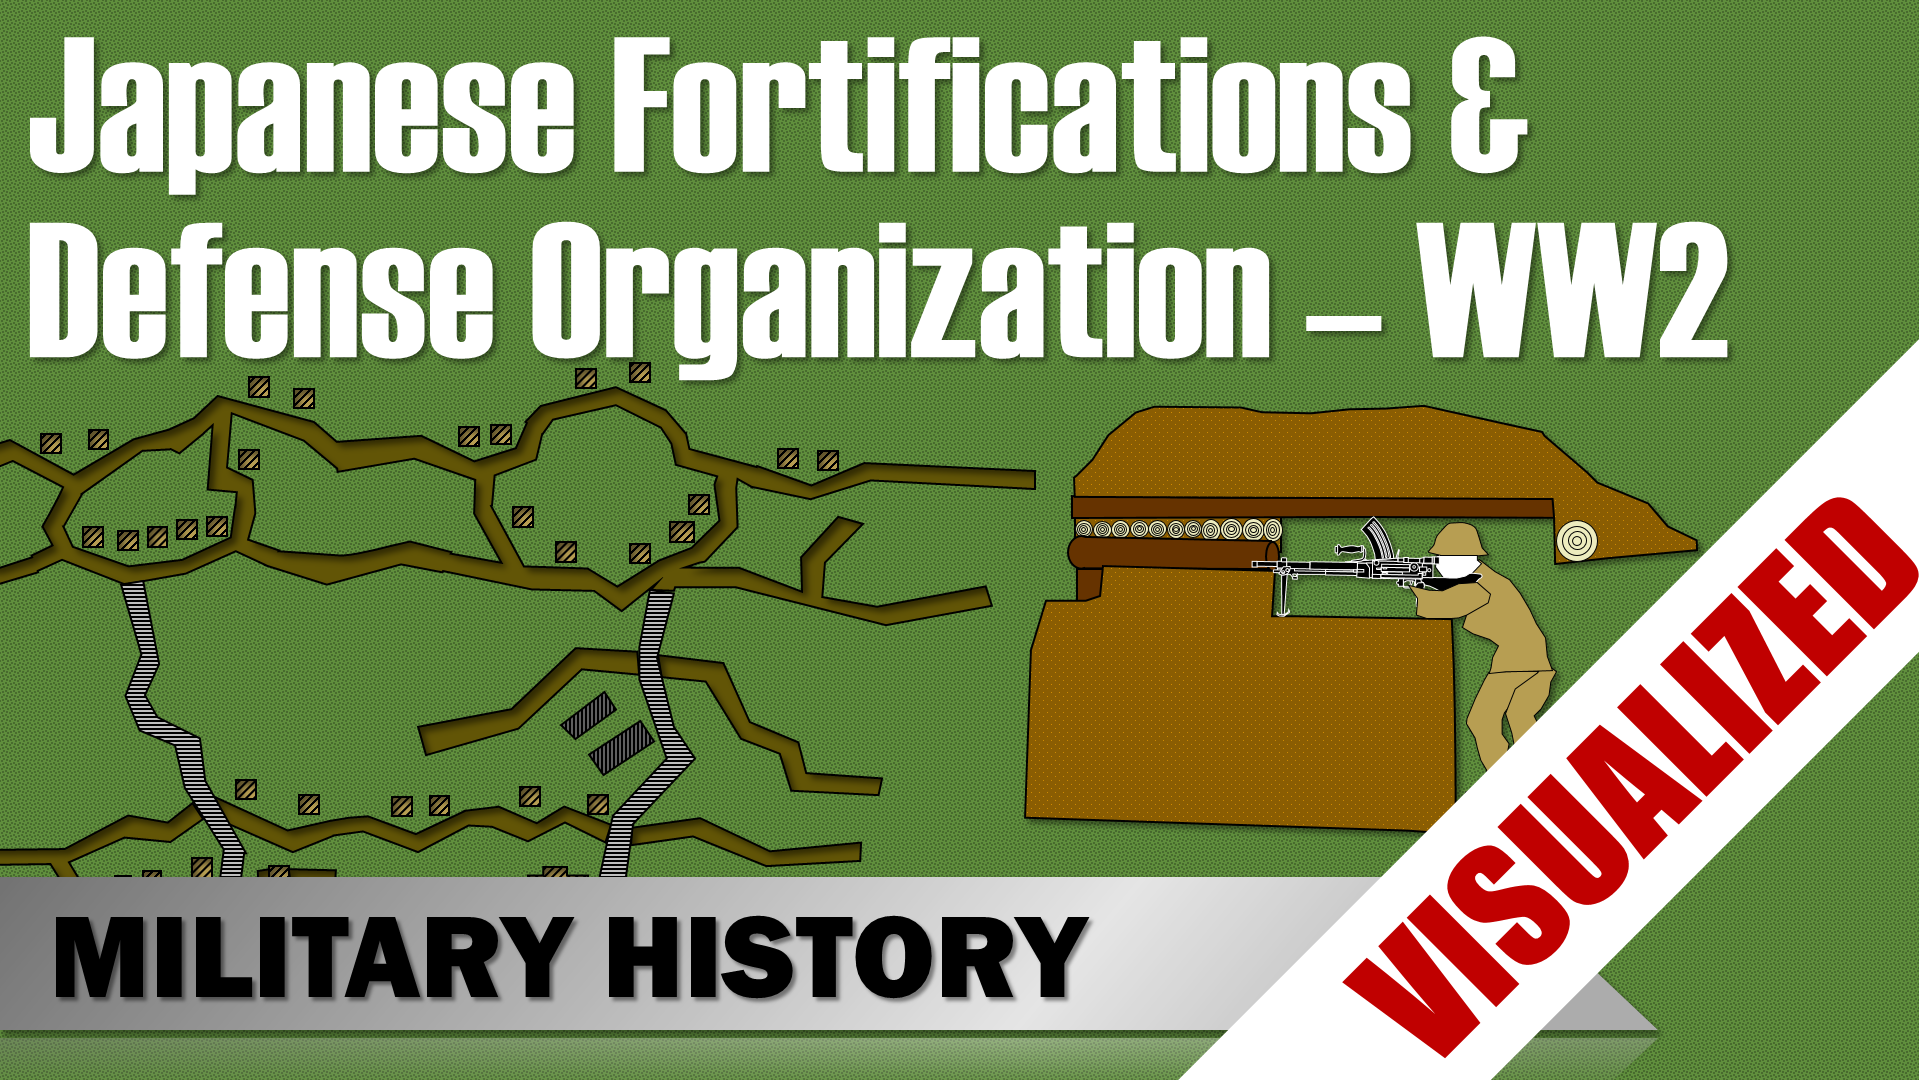 Japanese Fortifications and Defense Organization in World War 2